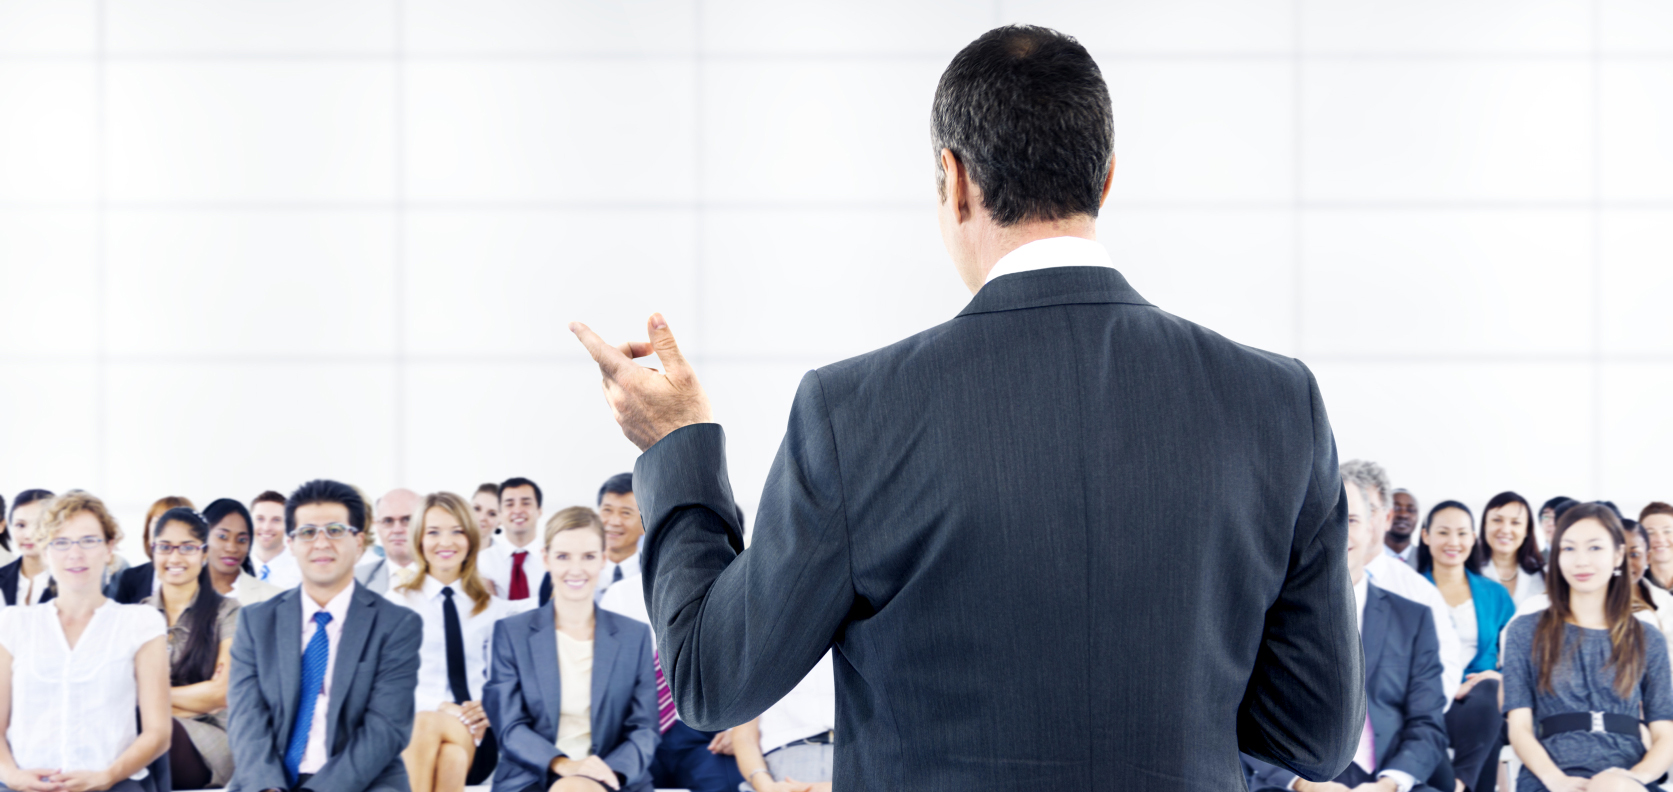 essays on overcoming public speaking How to overcome a fear of public speaking posted on february 24, 2016 do you get performance anxiety when you need to make a speech in public, be.